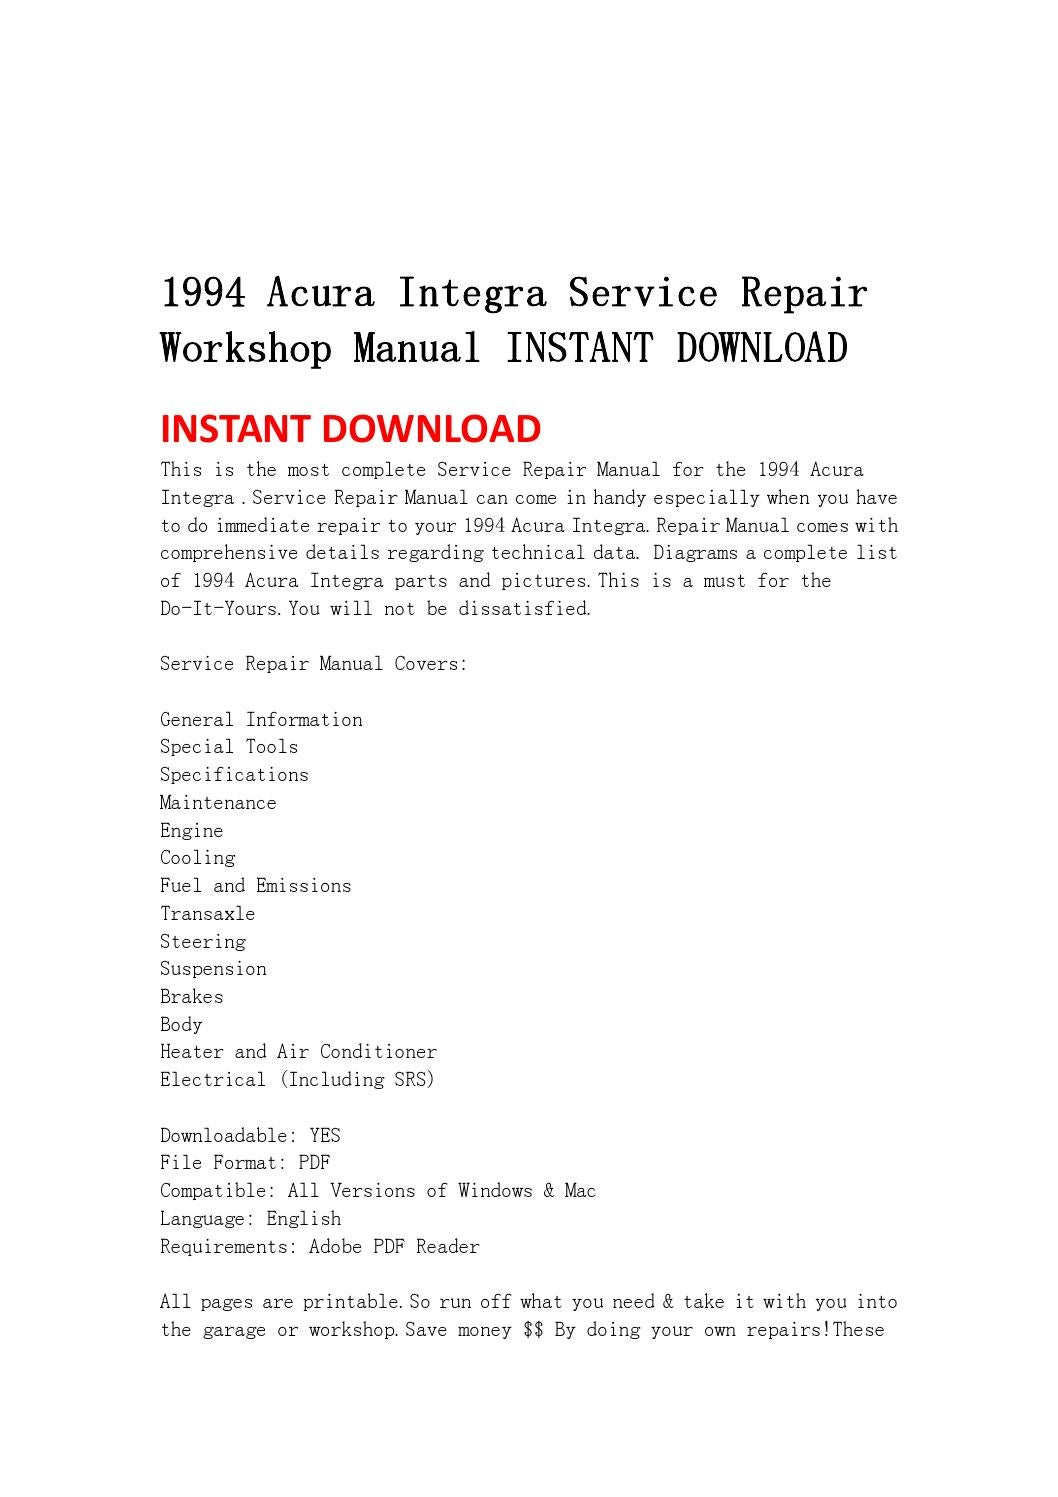 1994 Acura Integra Service Repair Workshop Manual Instant Download Wiring Diagram Pdf By Kmsjefhn Issuu